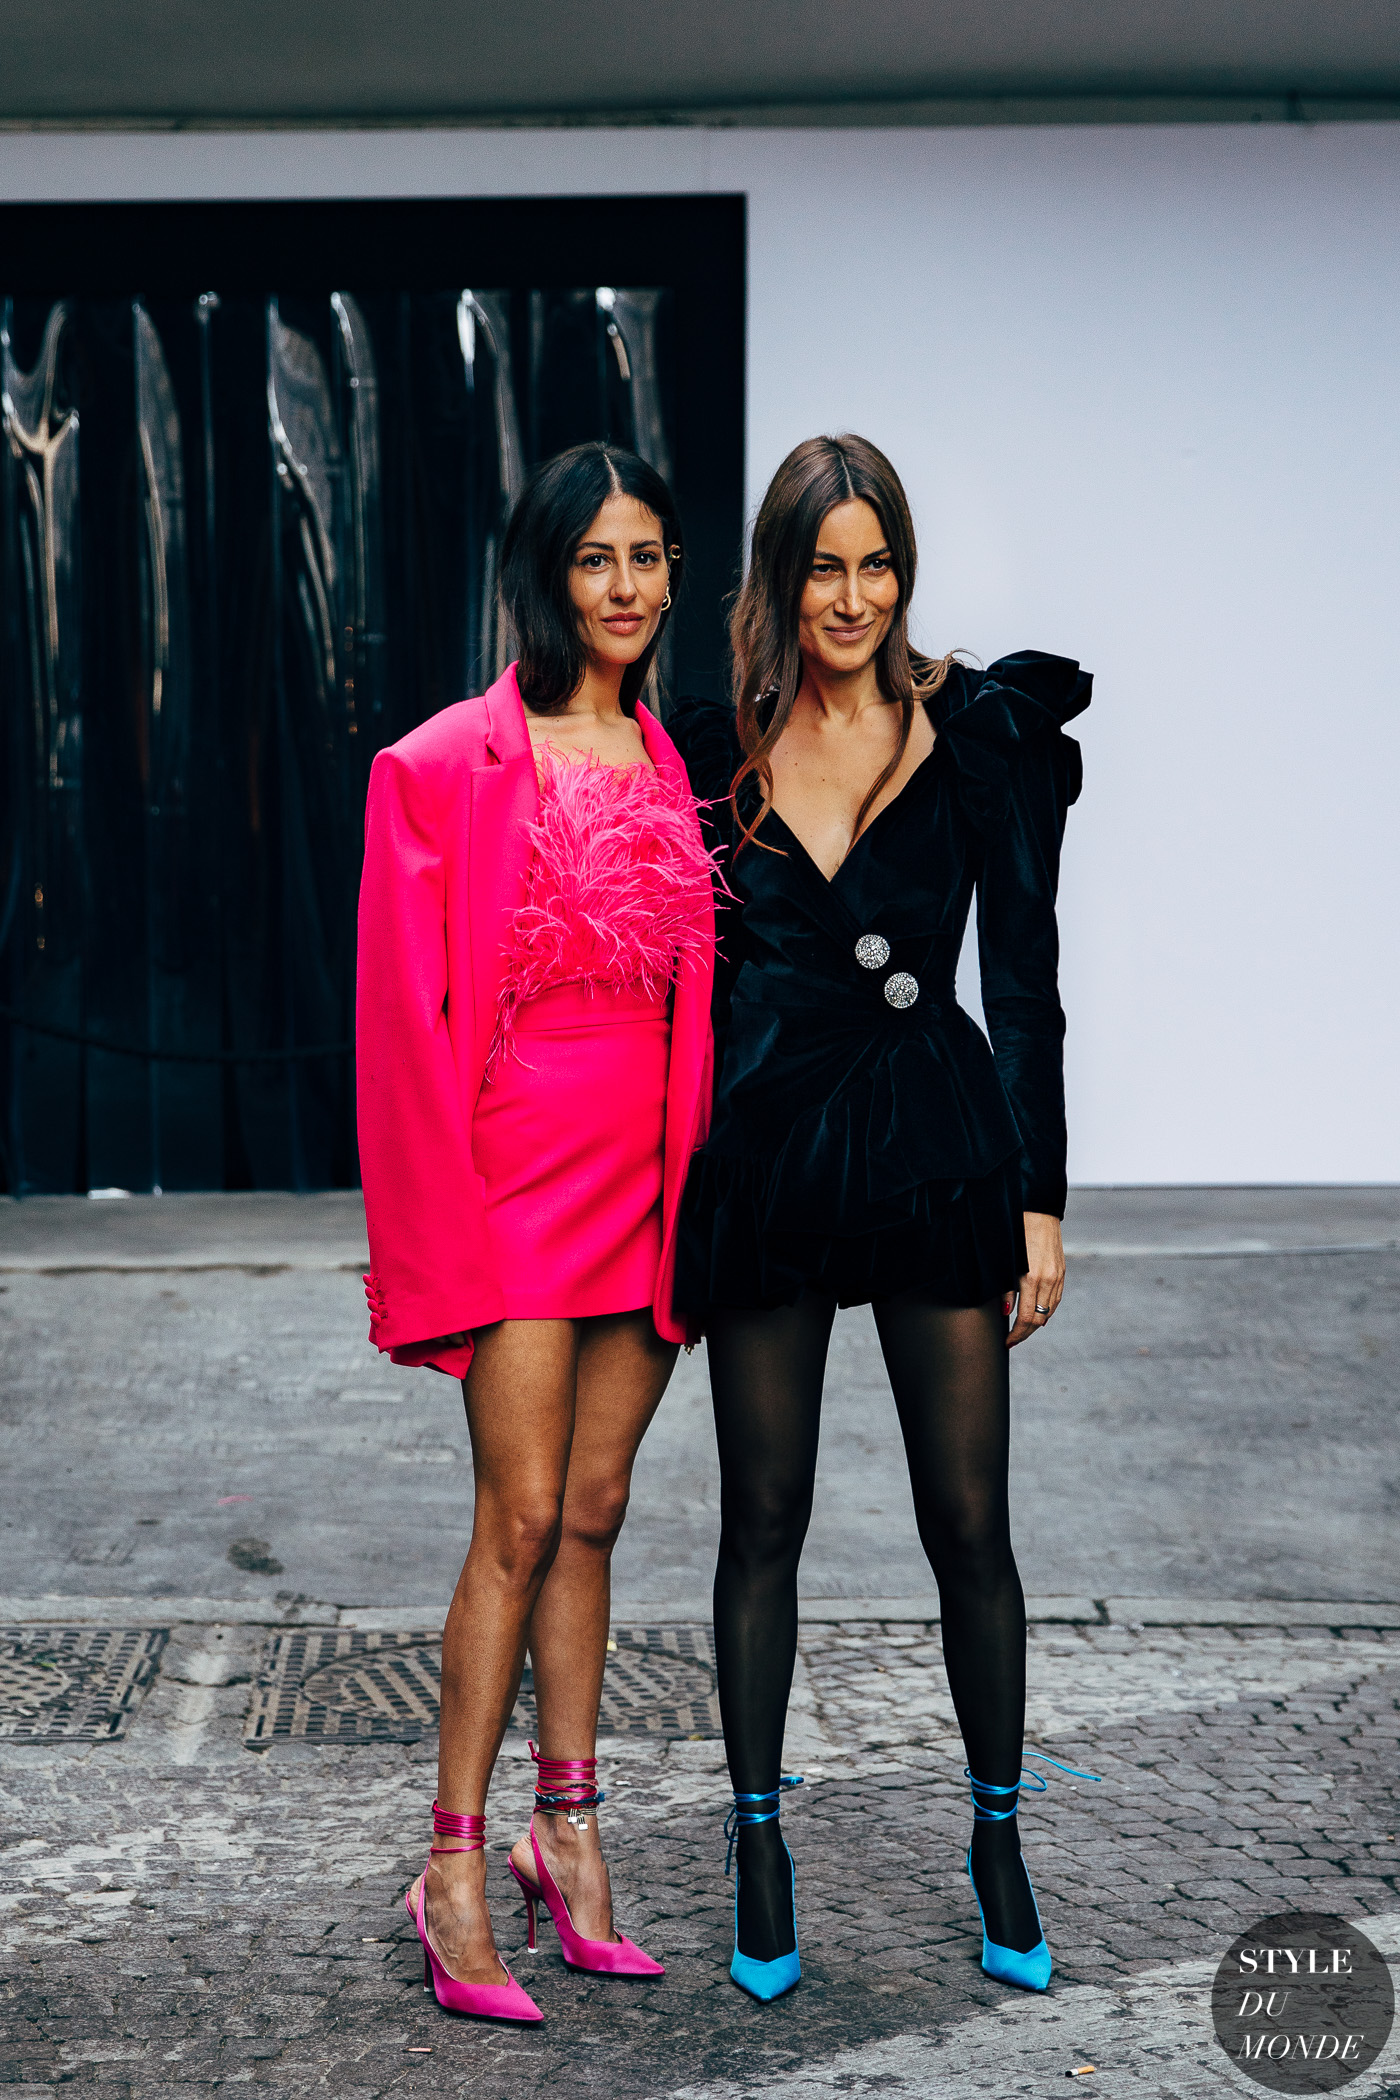 Gilda Ambrosio and Giorgia Tordini by STYLEDUMONDE Street Style Fashion Photography20190221_48A4413